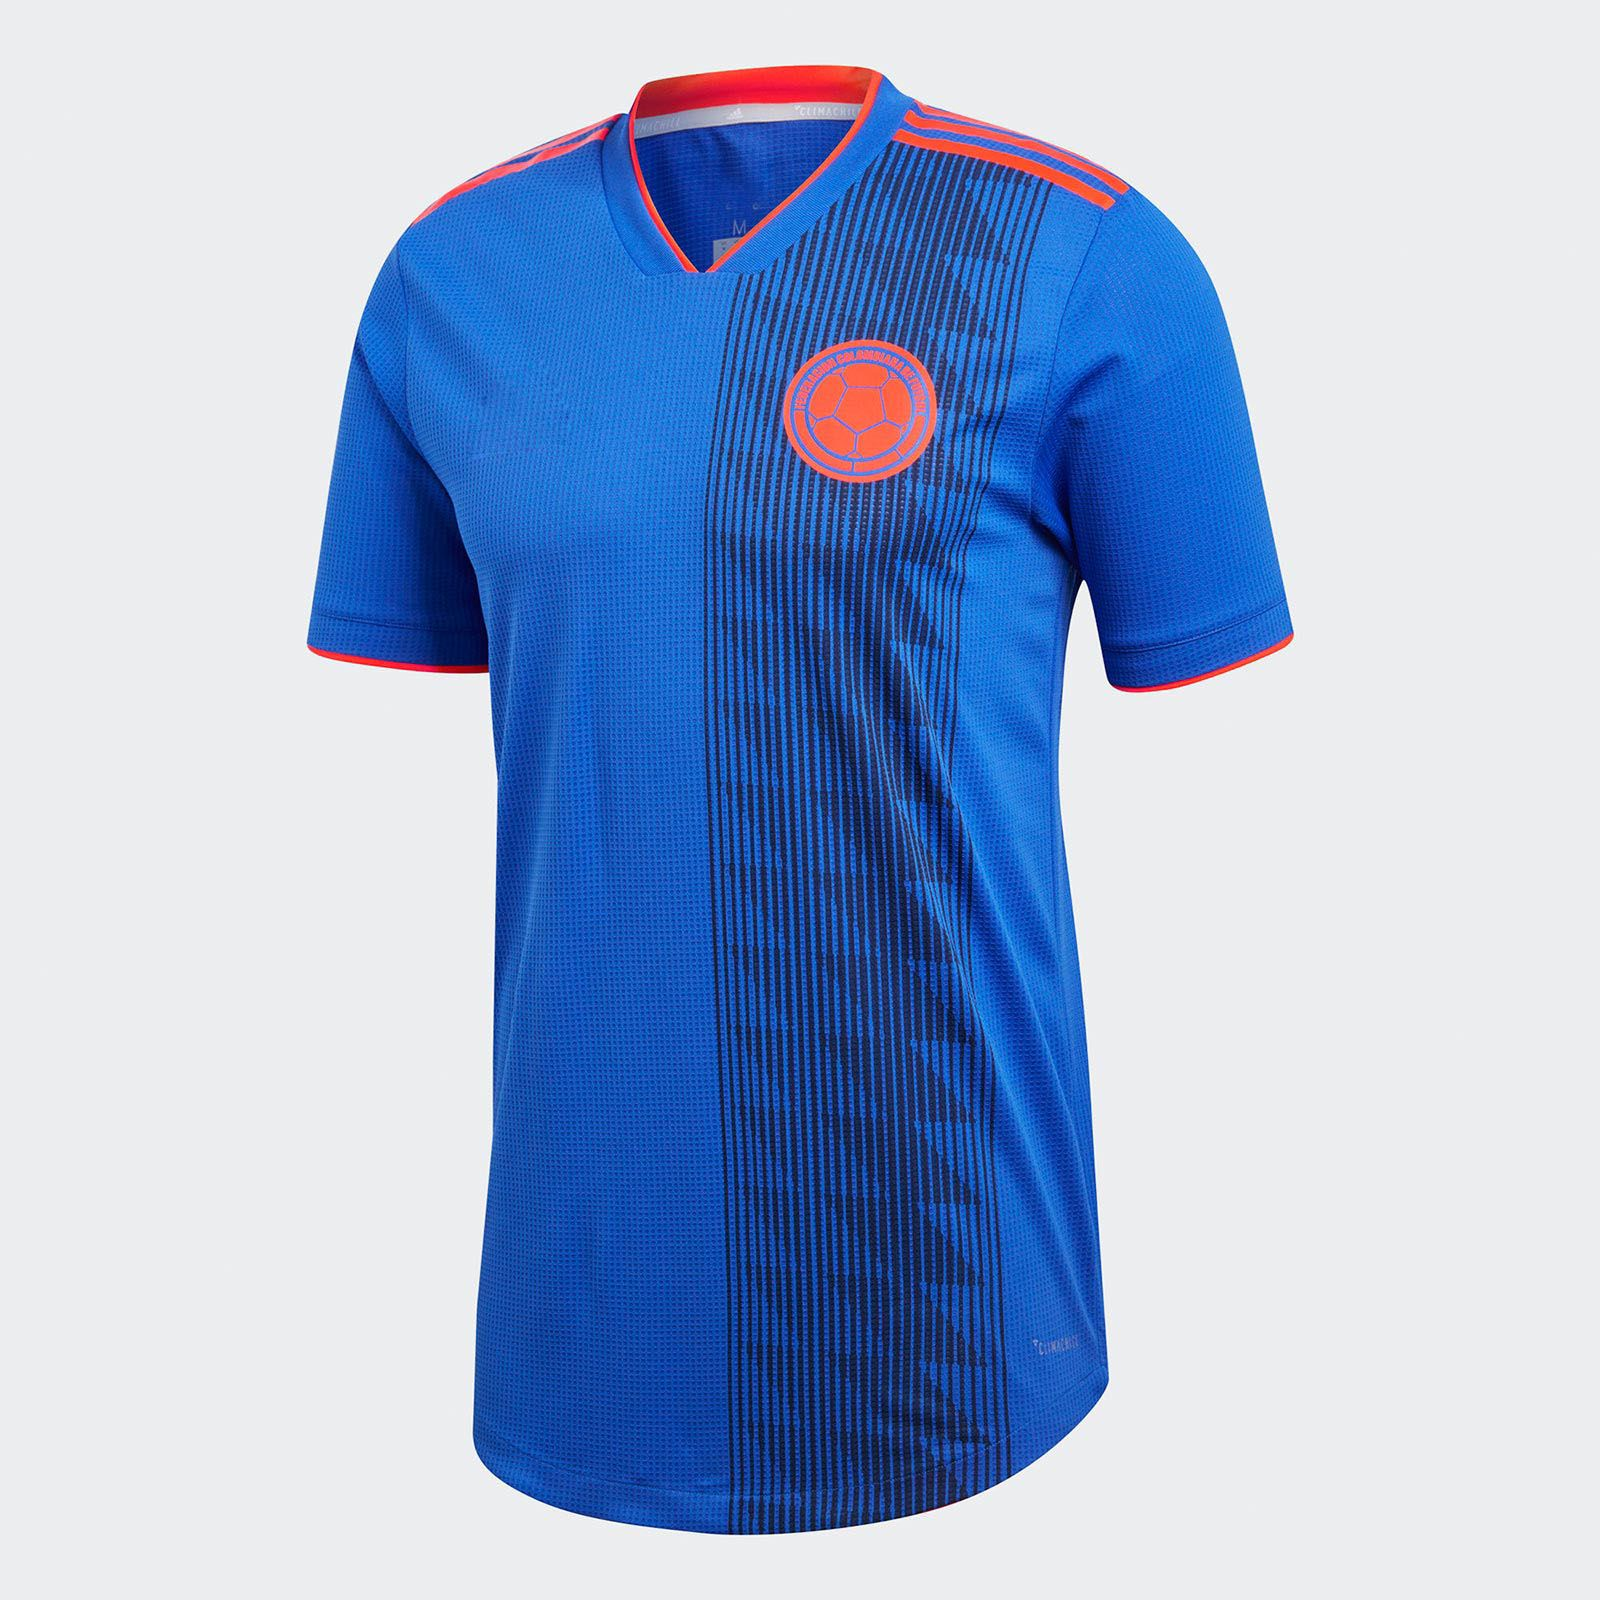 68ae695a6 2018 Colombia World Cup Away Jersey